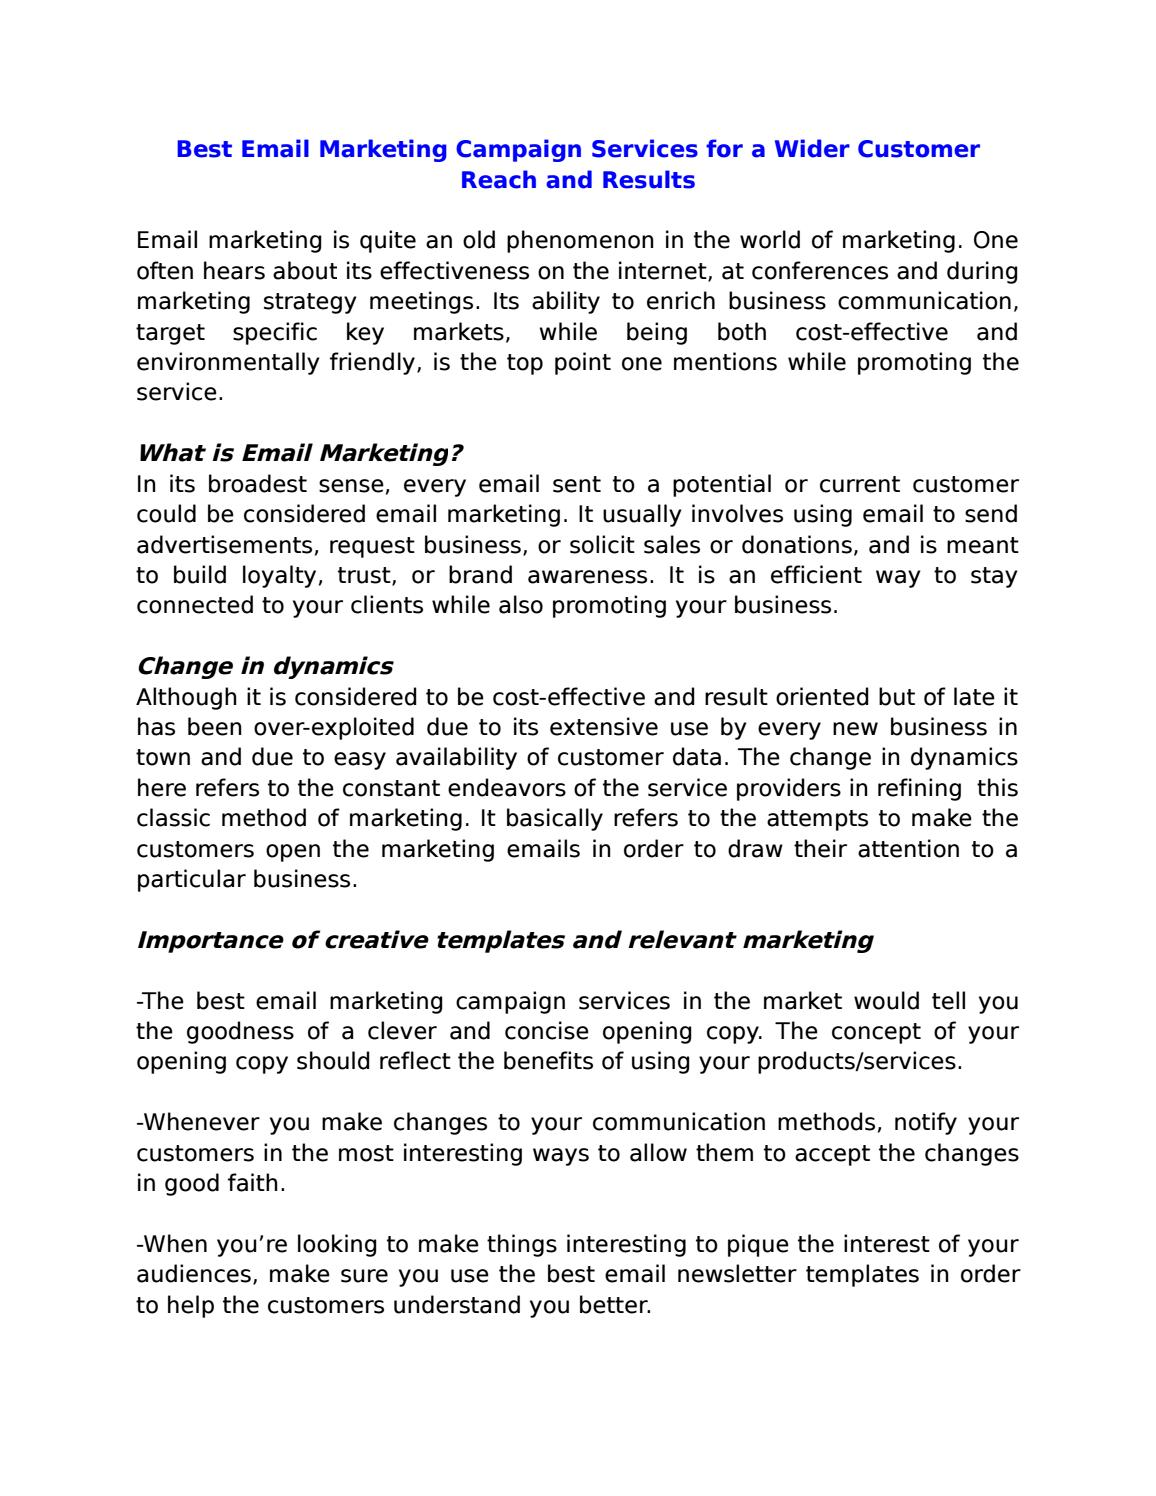 Best email marketing campaign services for a wider customer reach ...